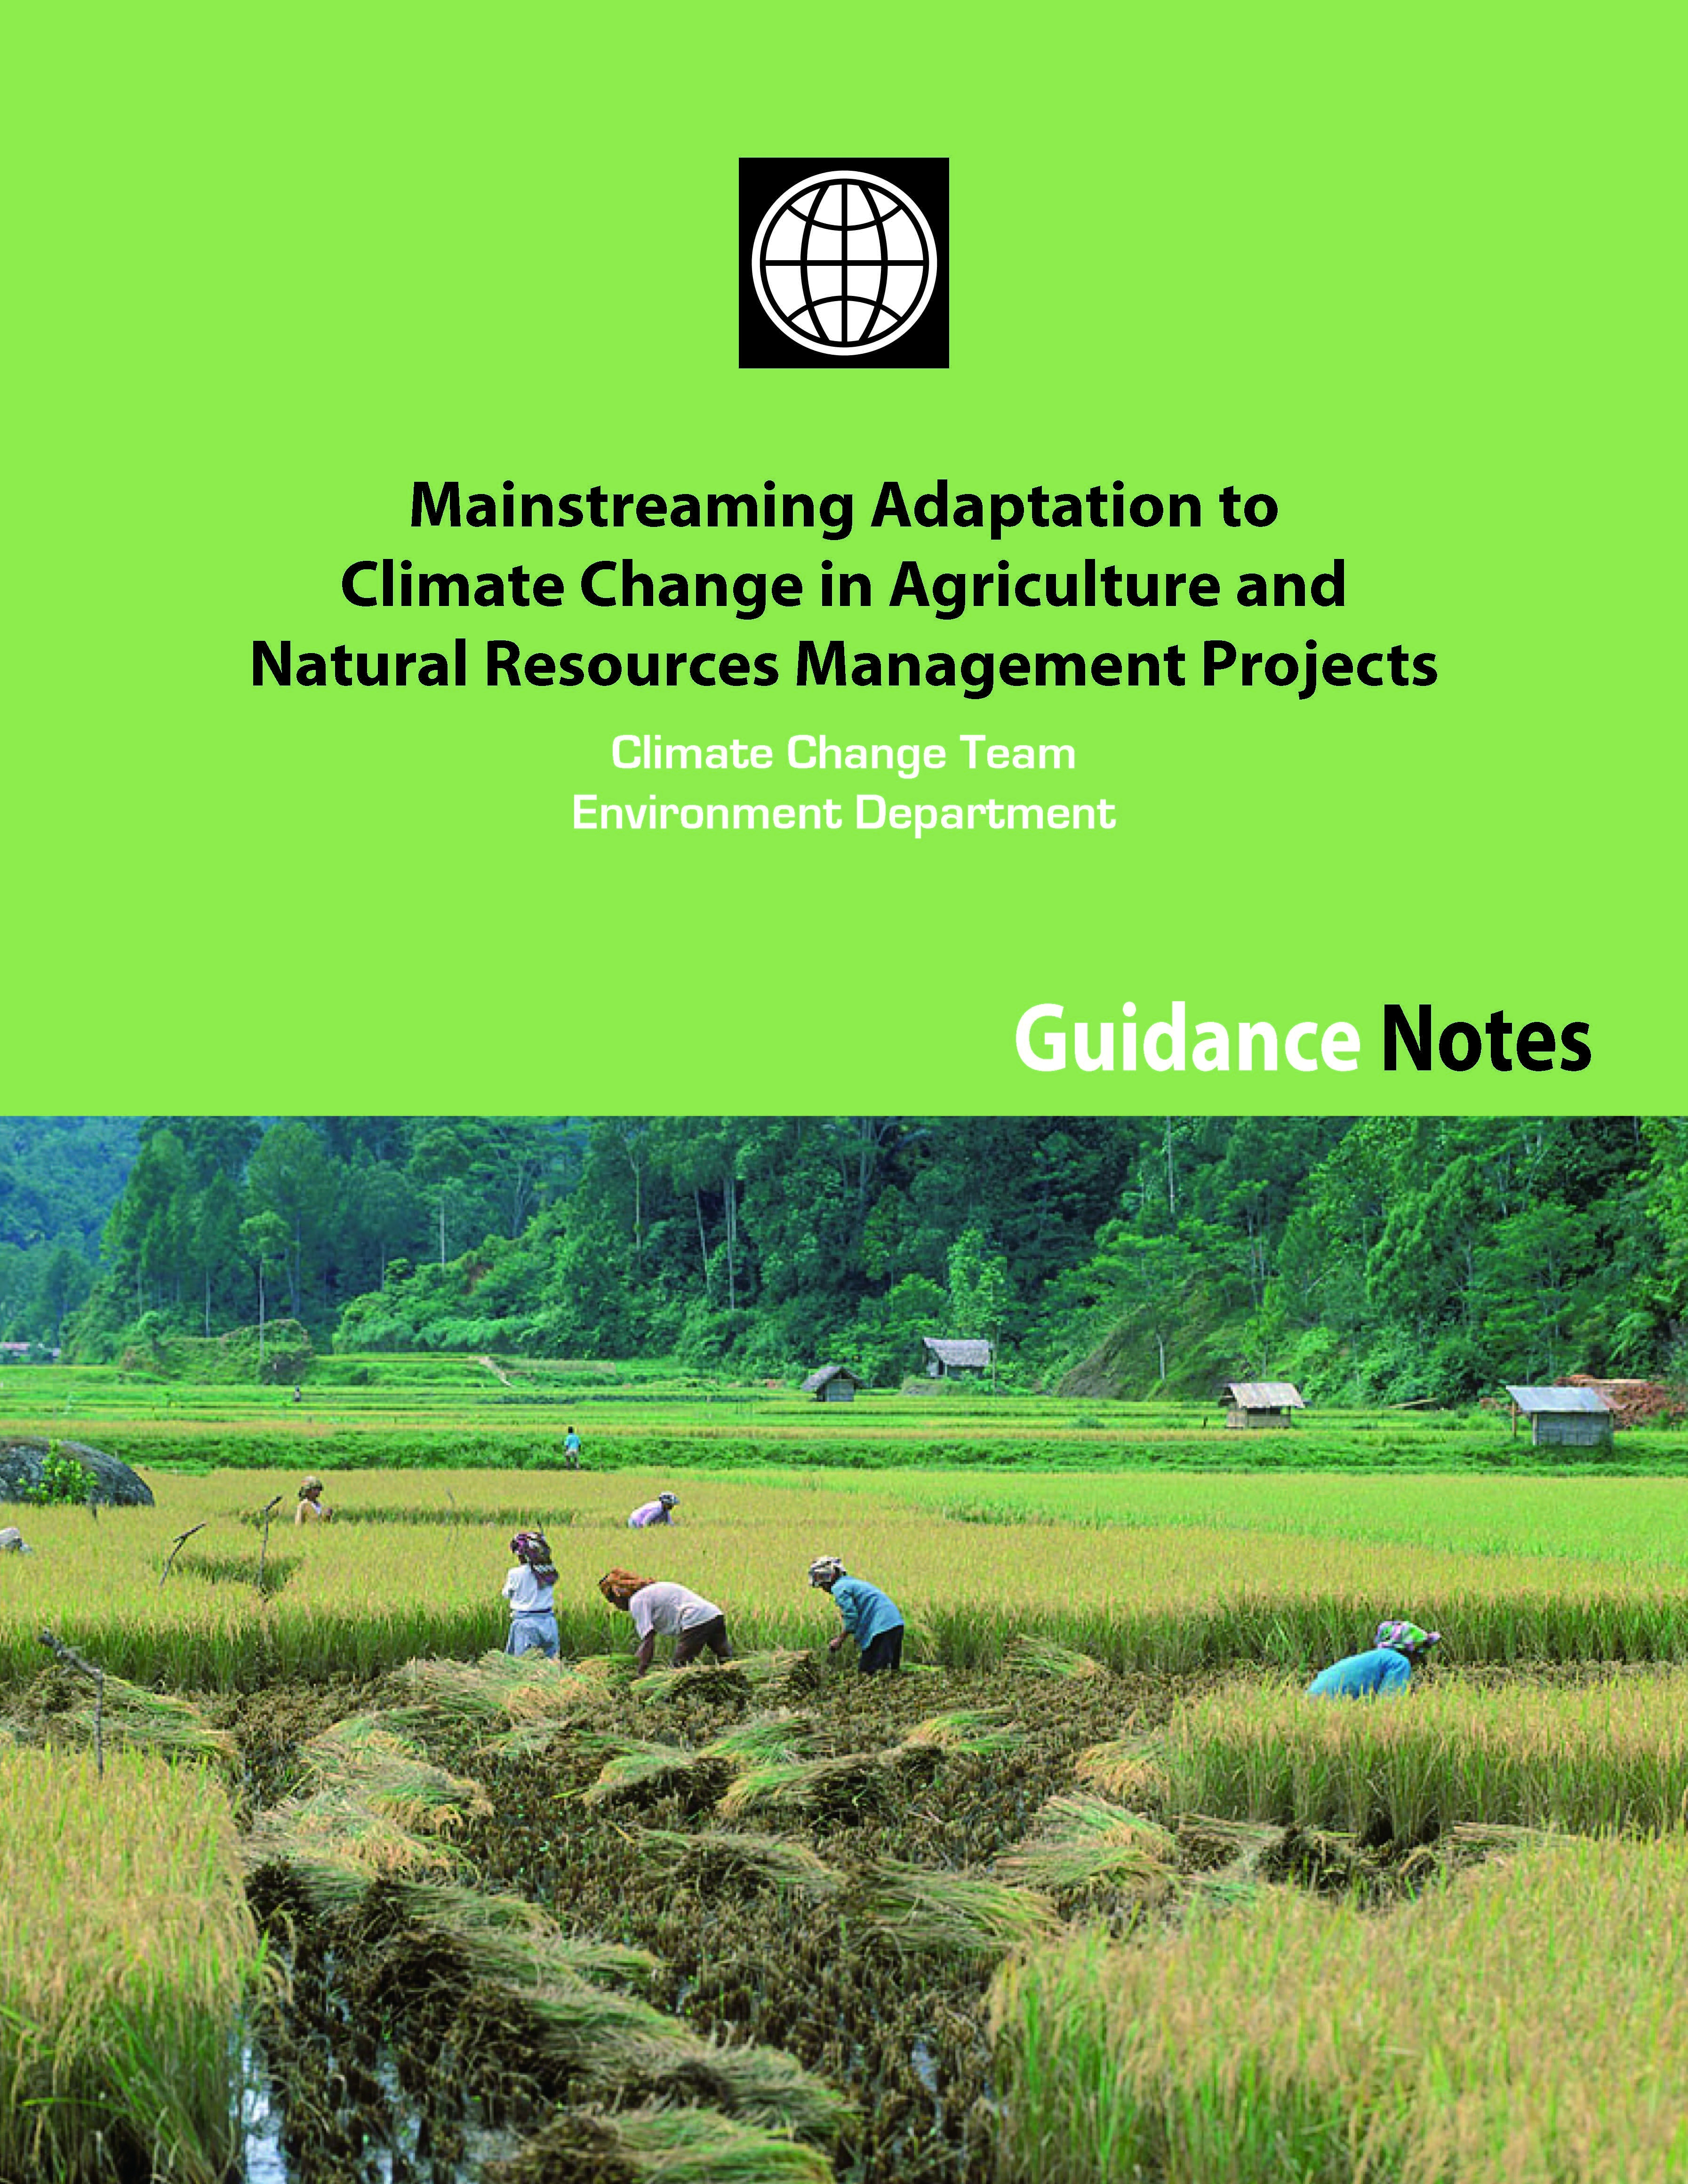 Mainstreaming Adaptation to Climate Change in Agriculture and Natural Resources Management Projects